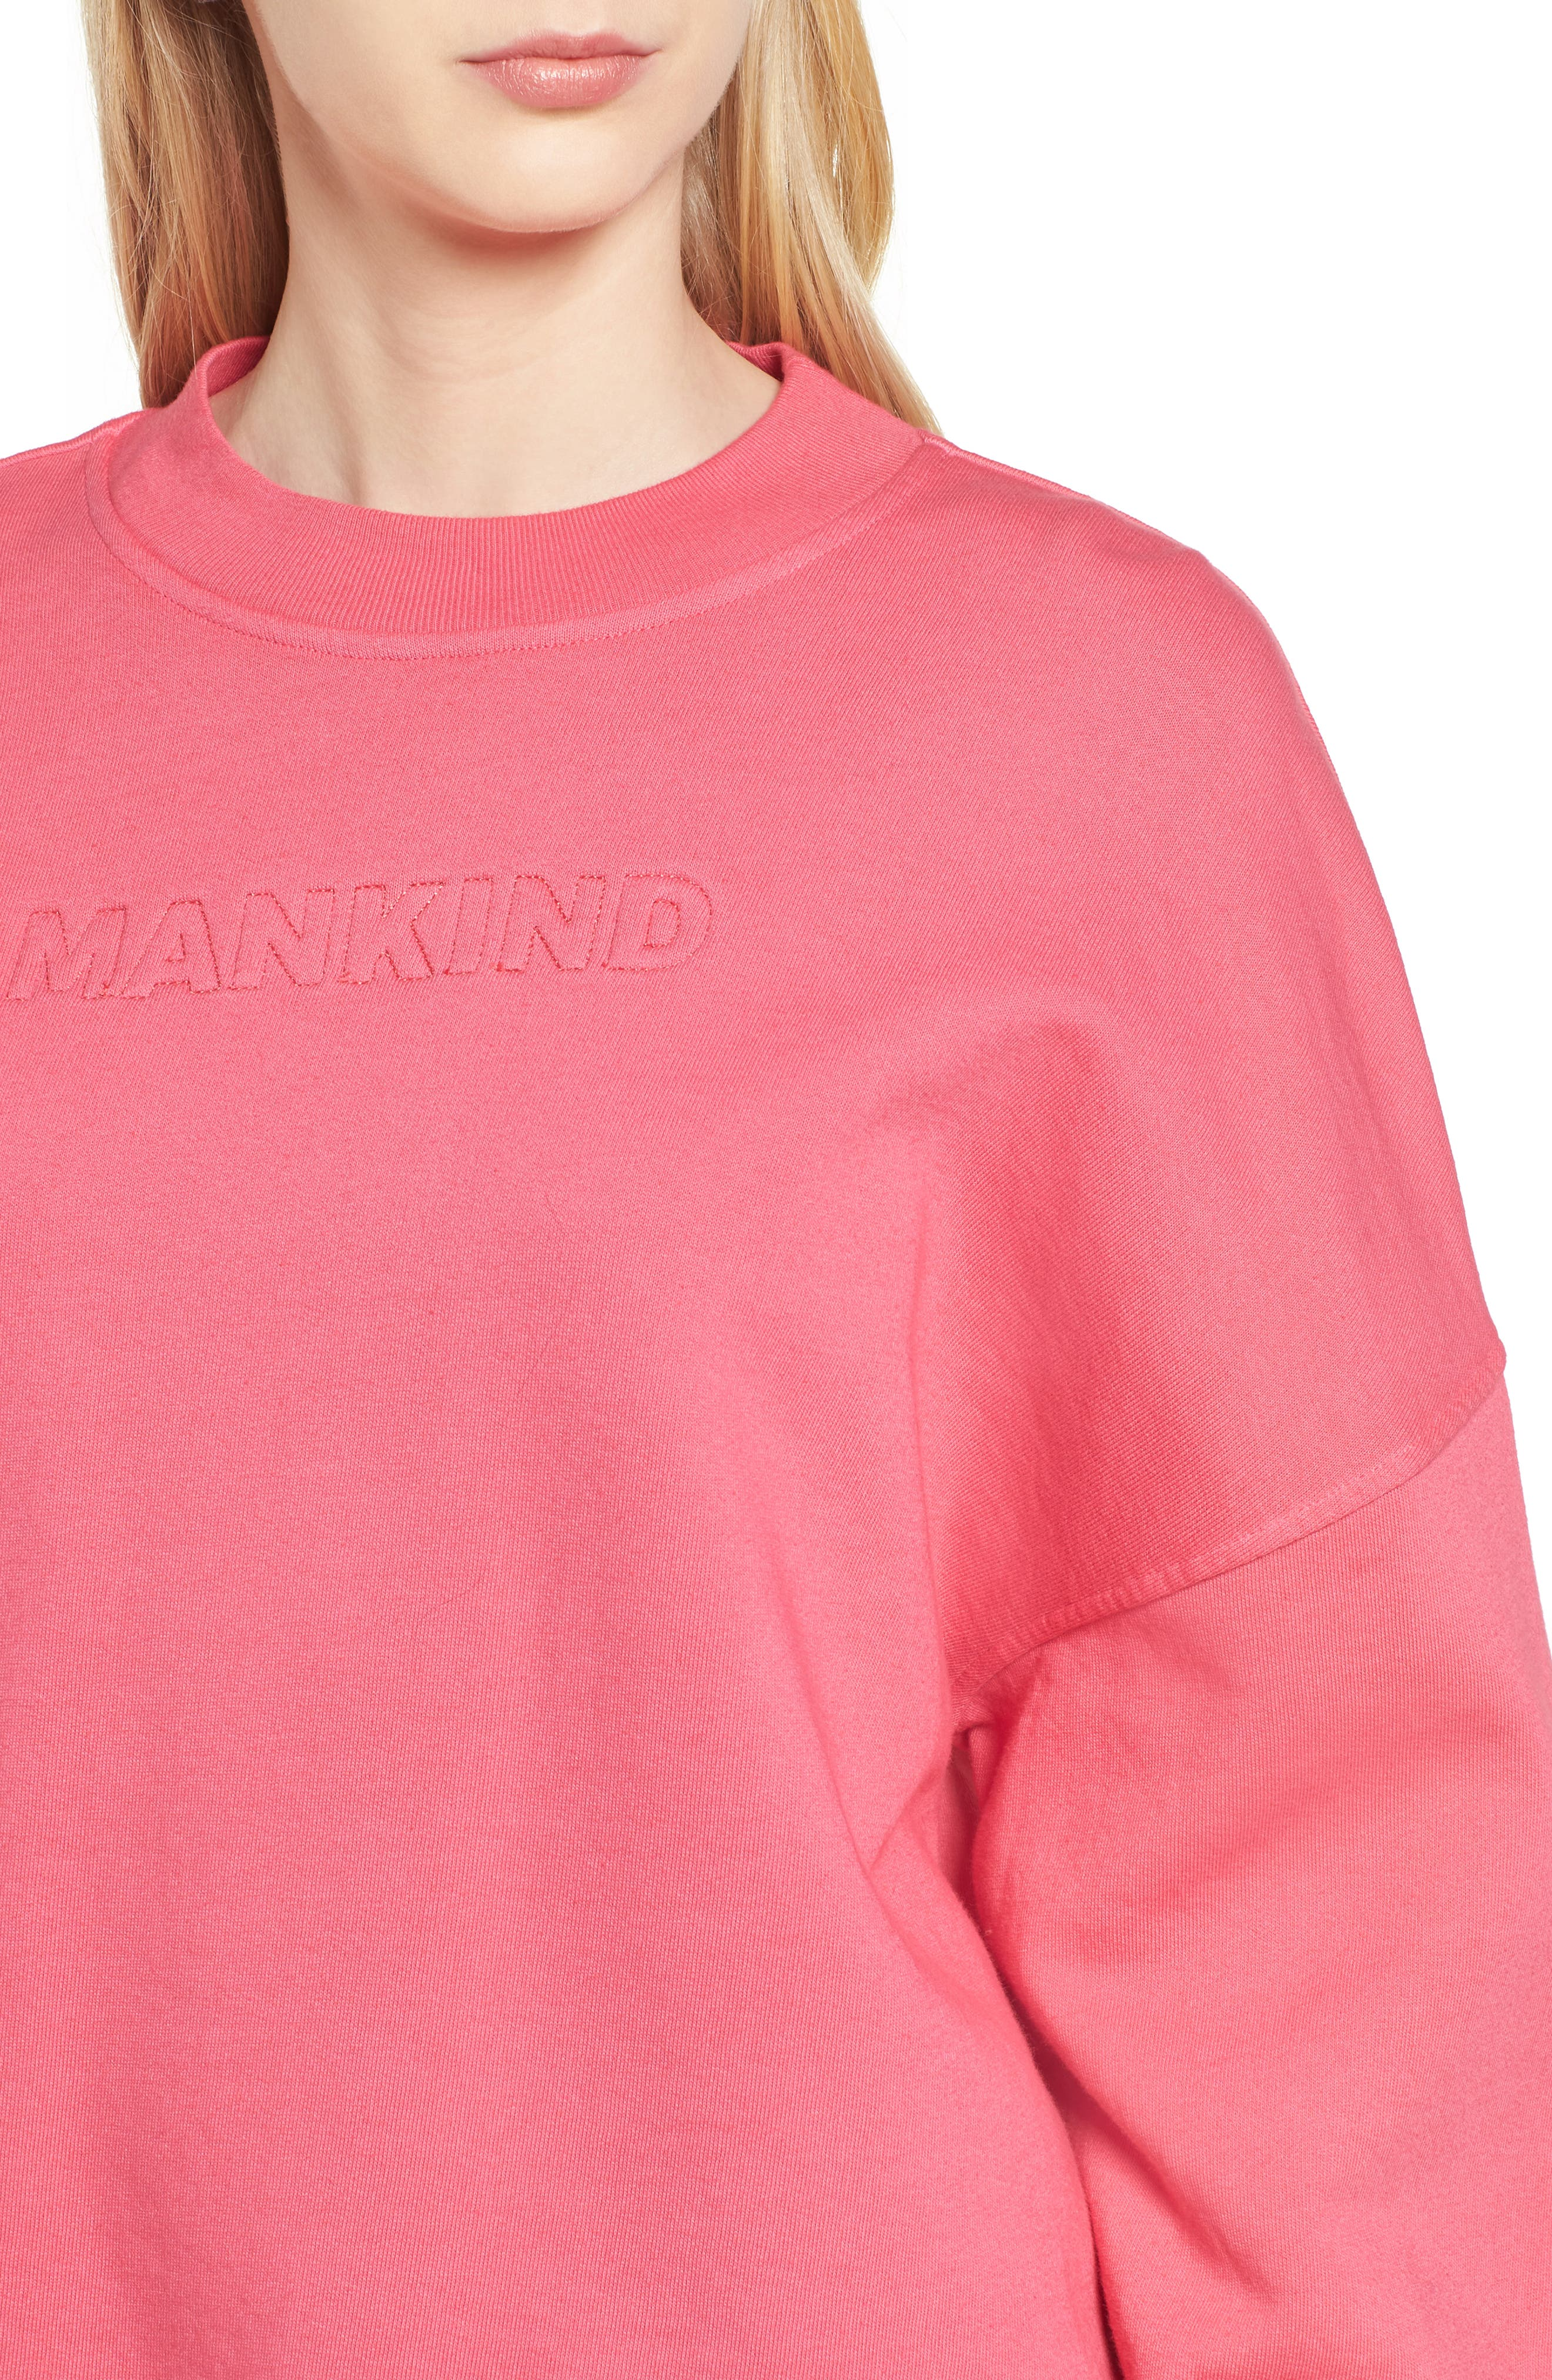 Mankind Outline Embroidered Sweatshirt,                             Alternate thumbnail 4, color,